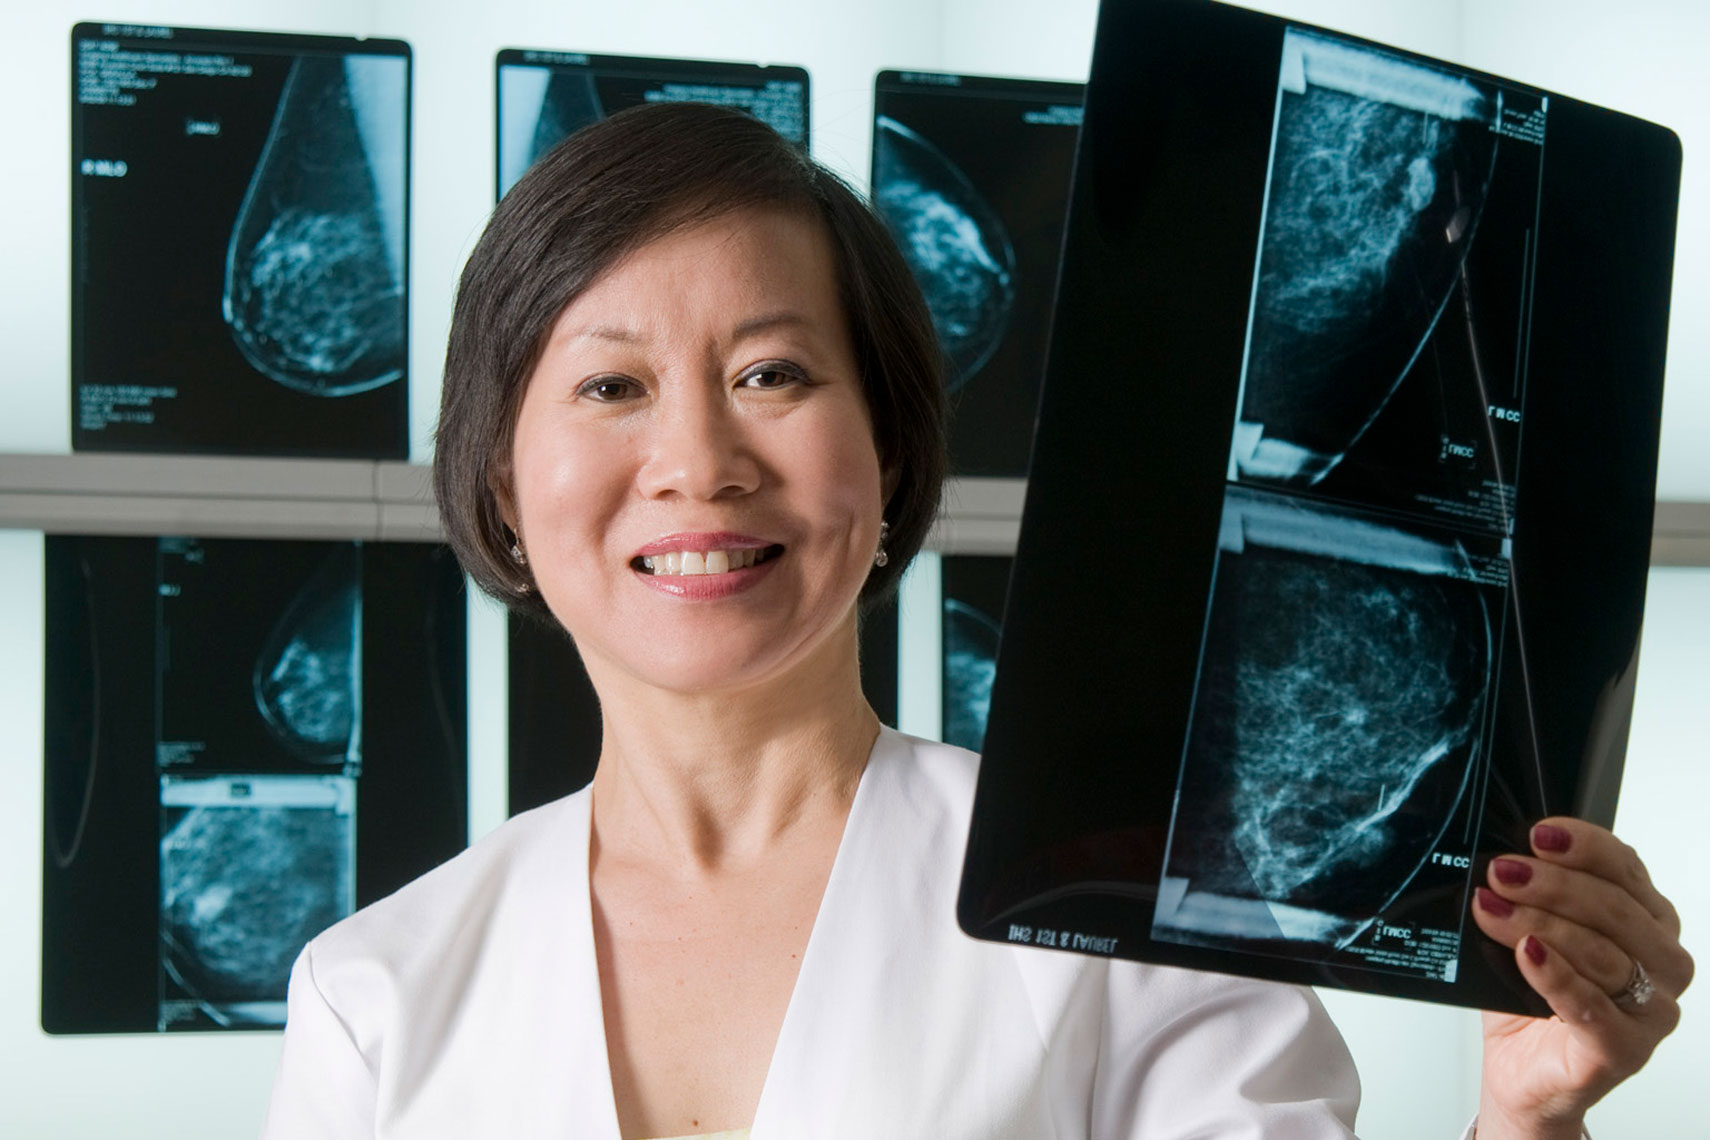 Female-doctor-of-oncology-examines-mammogram-by-environmental-portrait-photographer-Joe-Atlas.